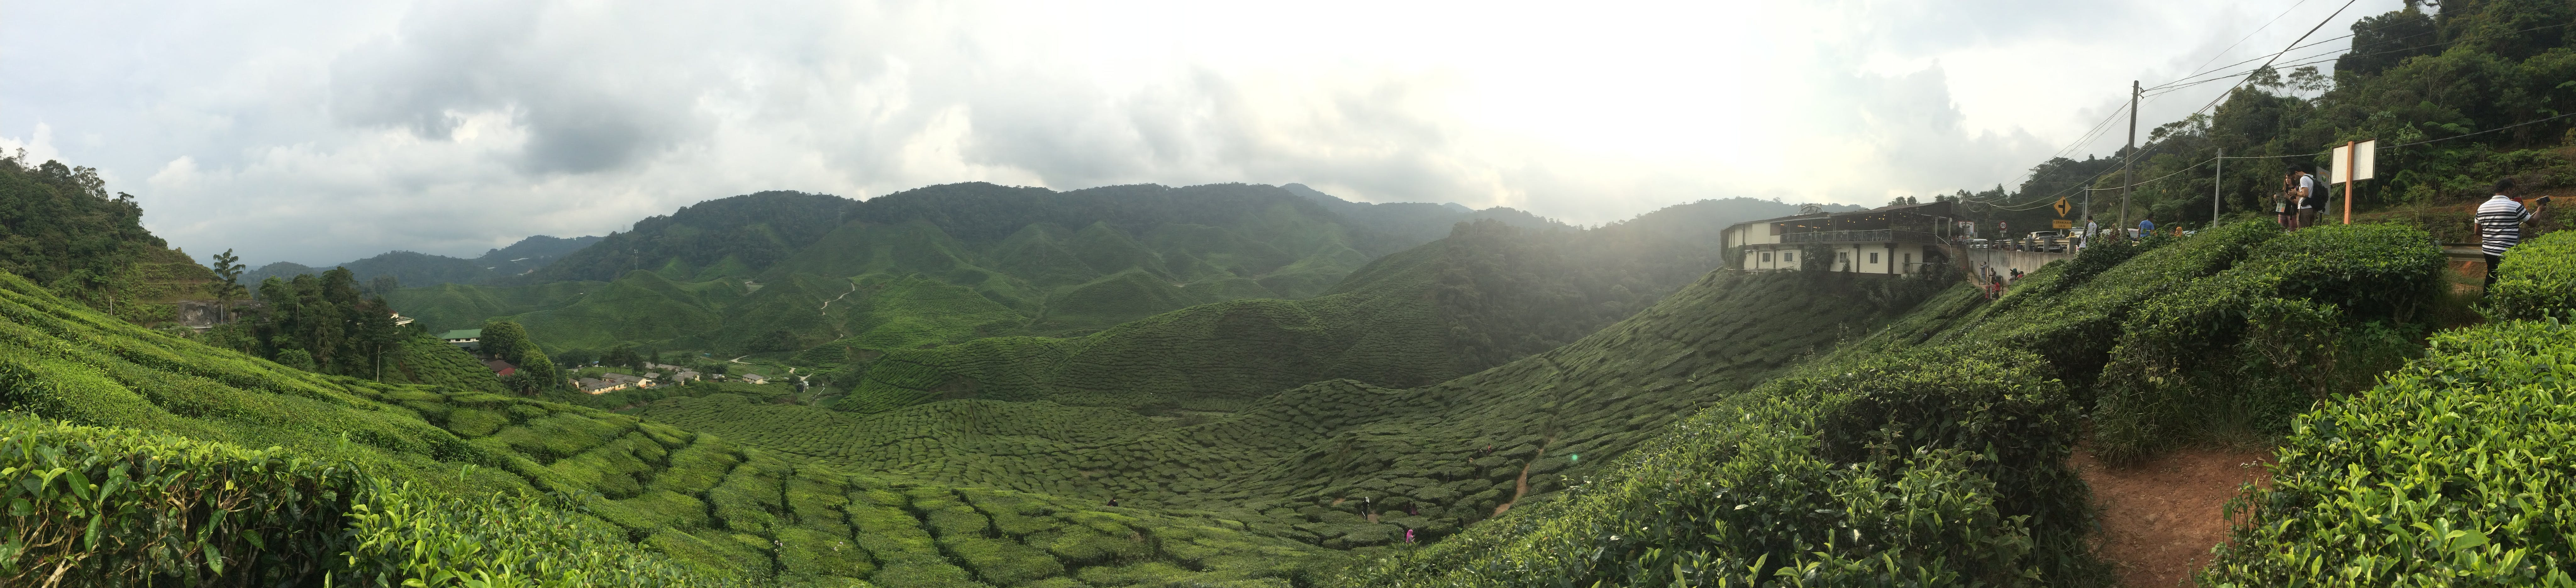 Panoramic Photography of Green Mountain Range